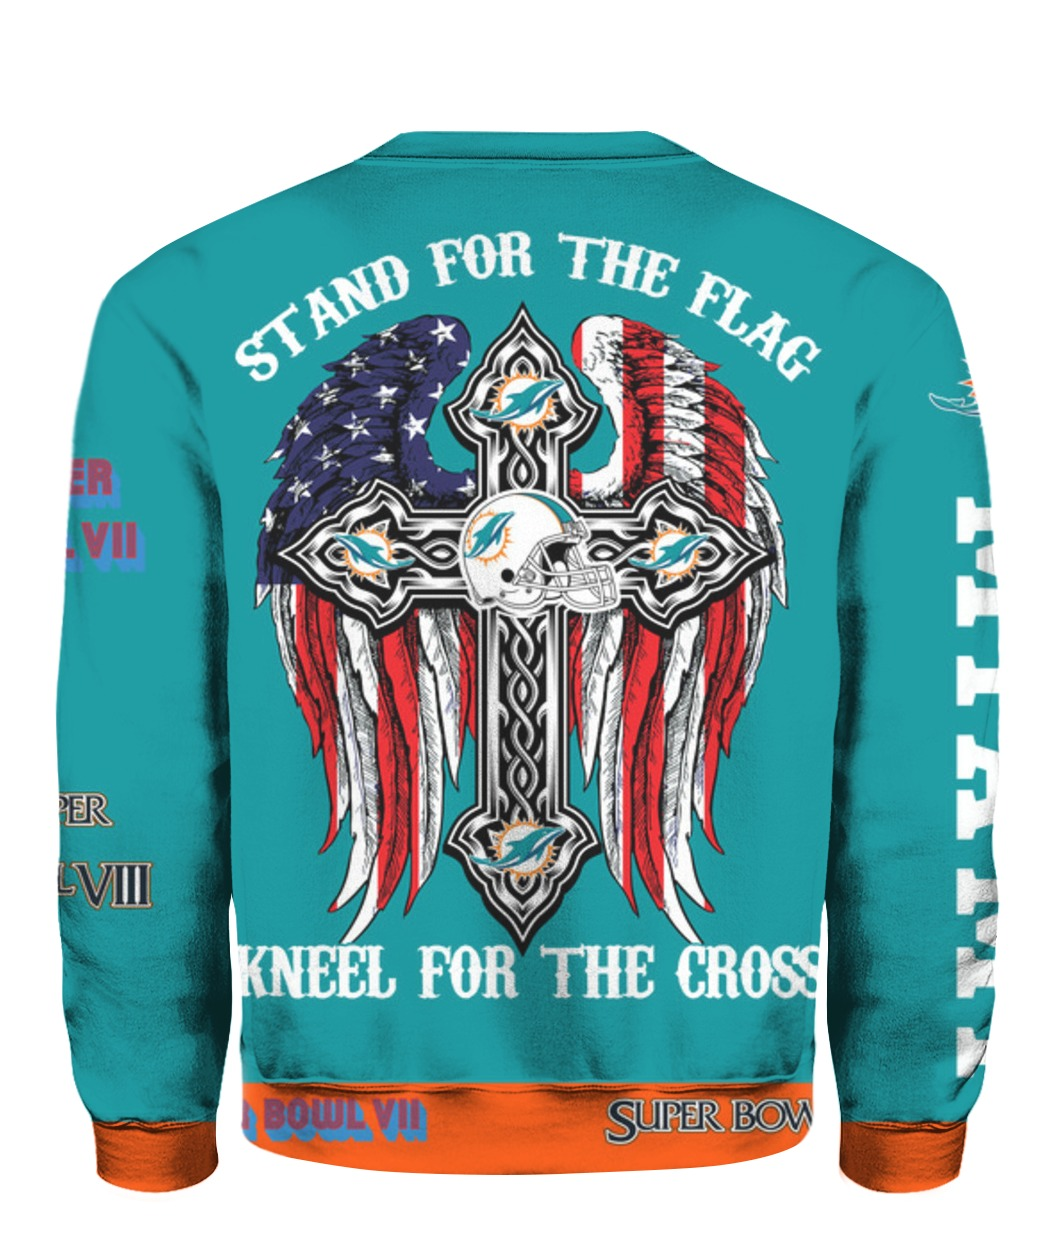 Stand for the flag kneel for the cross miami dolphins all over print sweatshirt - back